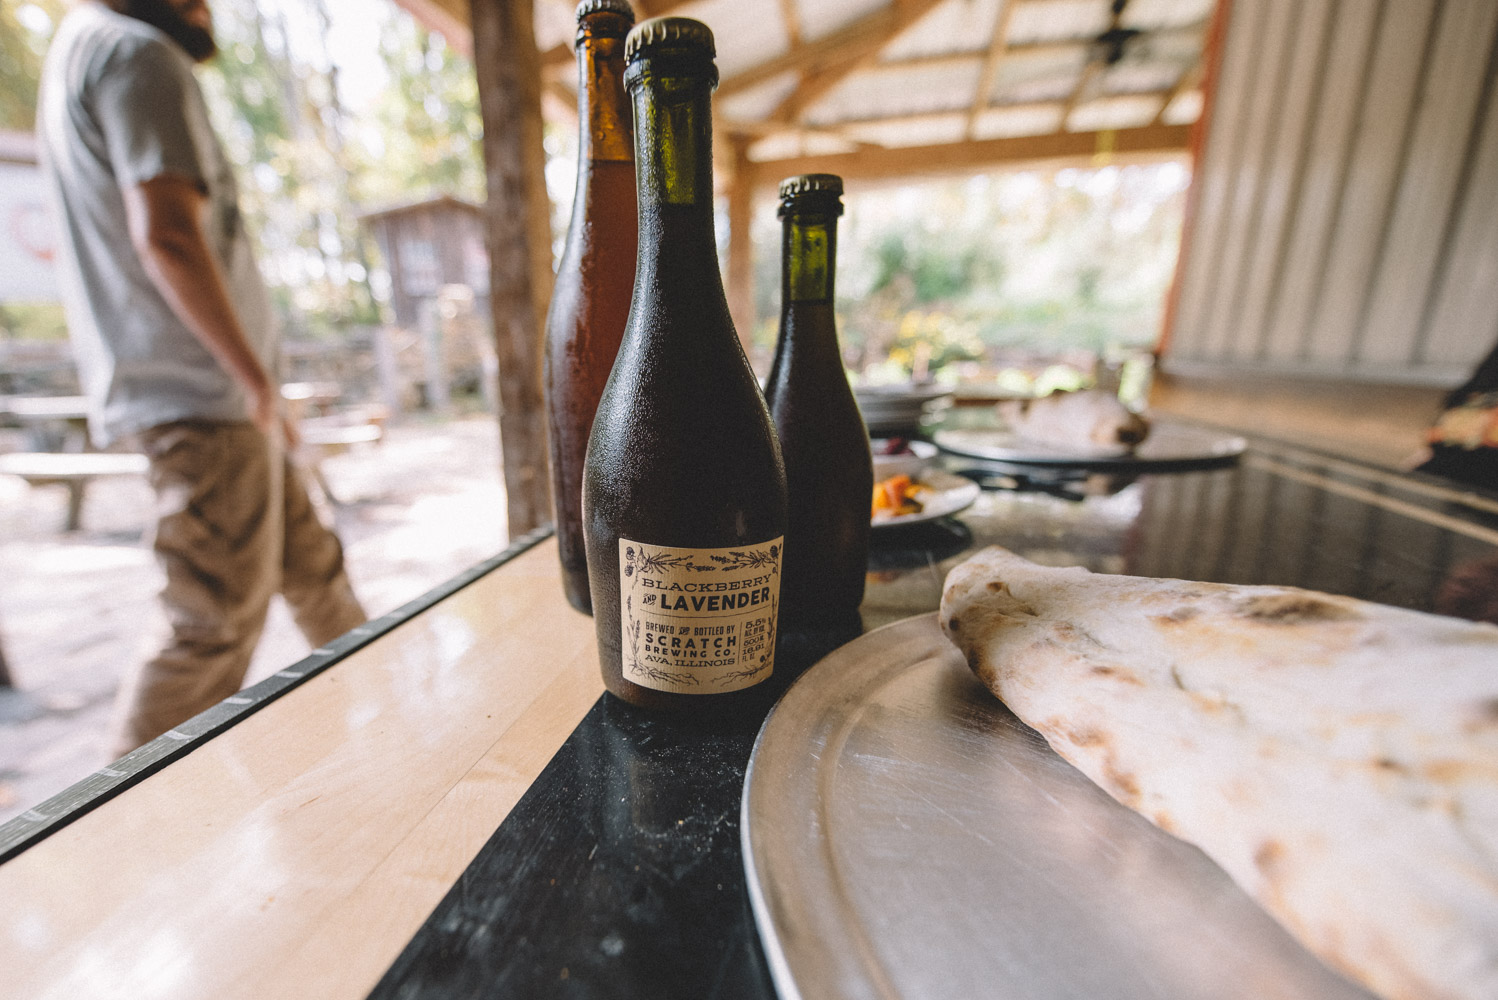 Scratch-Brewing-Co-Foraging-Carbondale-Ava-Illinois-Good-Beer-Hunting-Matt-Sampson-Photography-lunch.jpg